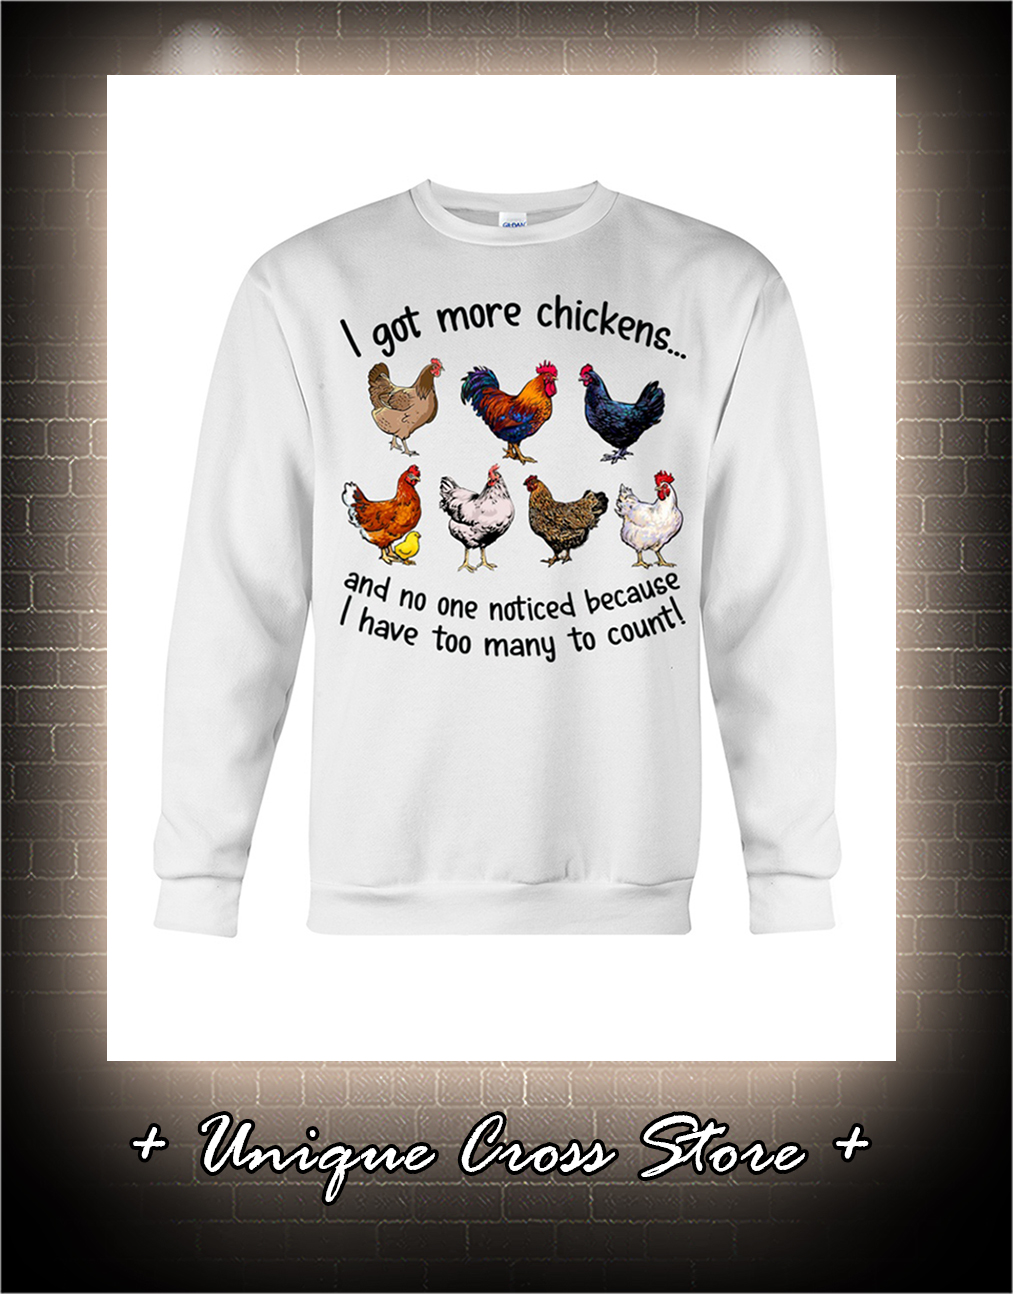 I Got More Chickens And No One Noticed Because I Have Too Many To Count sweater